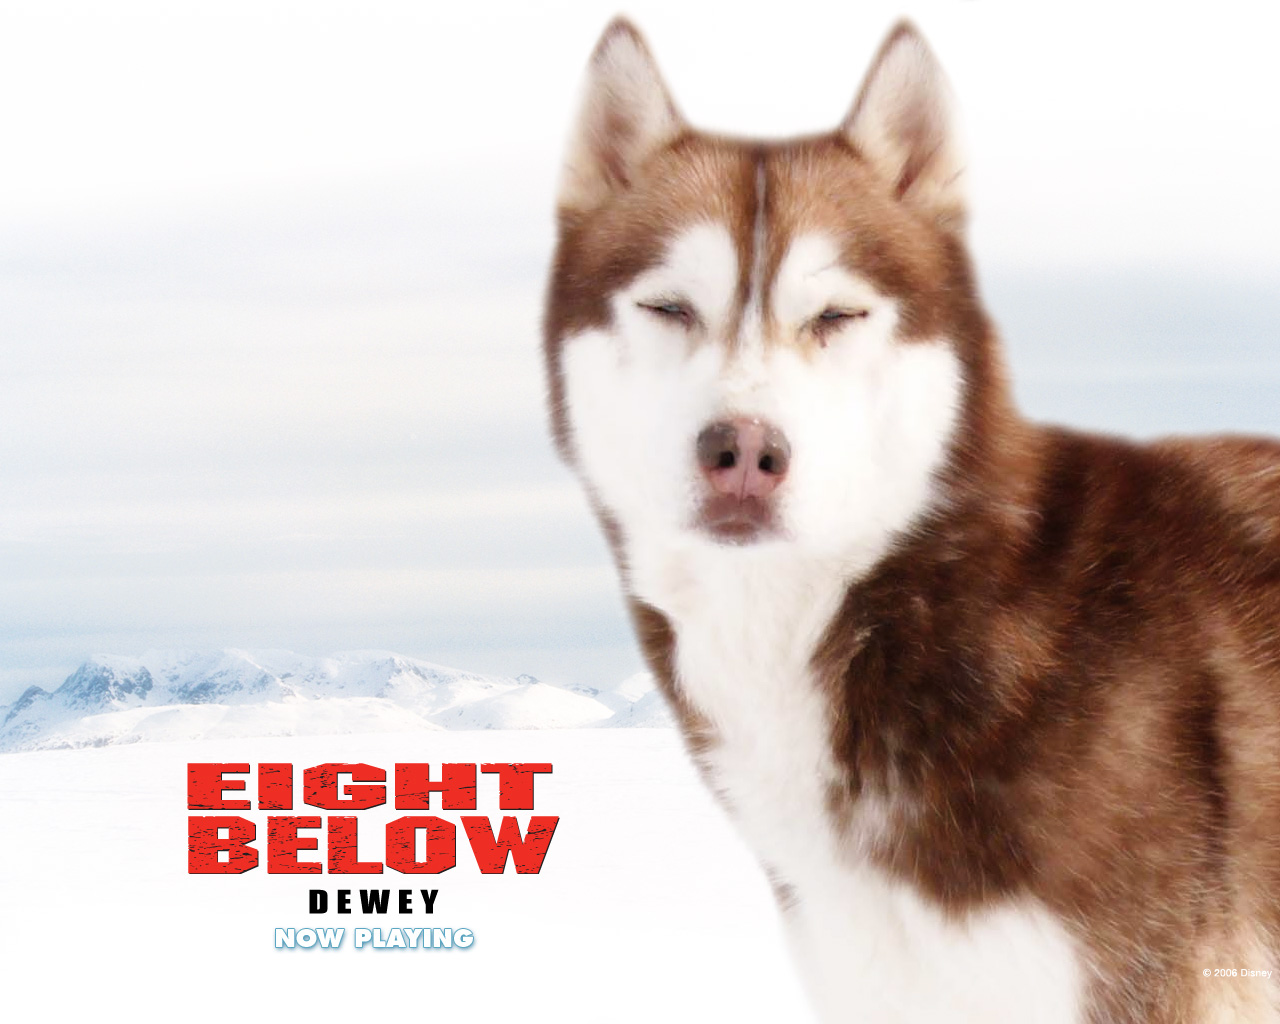 Eight Below-dewey